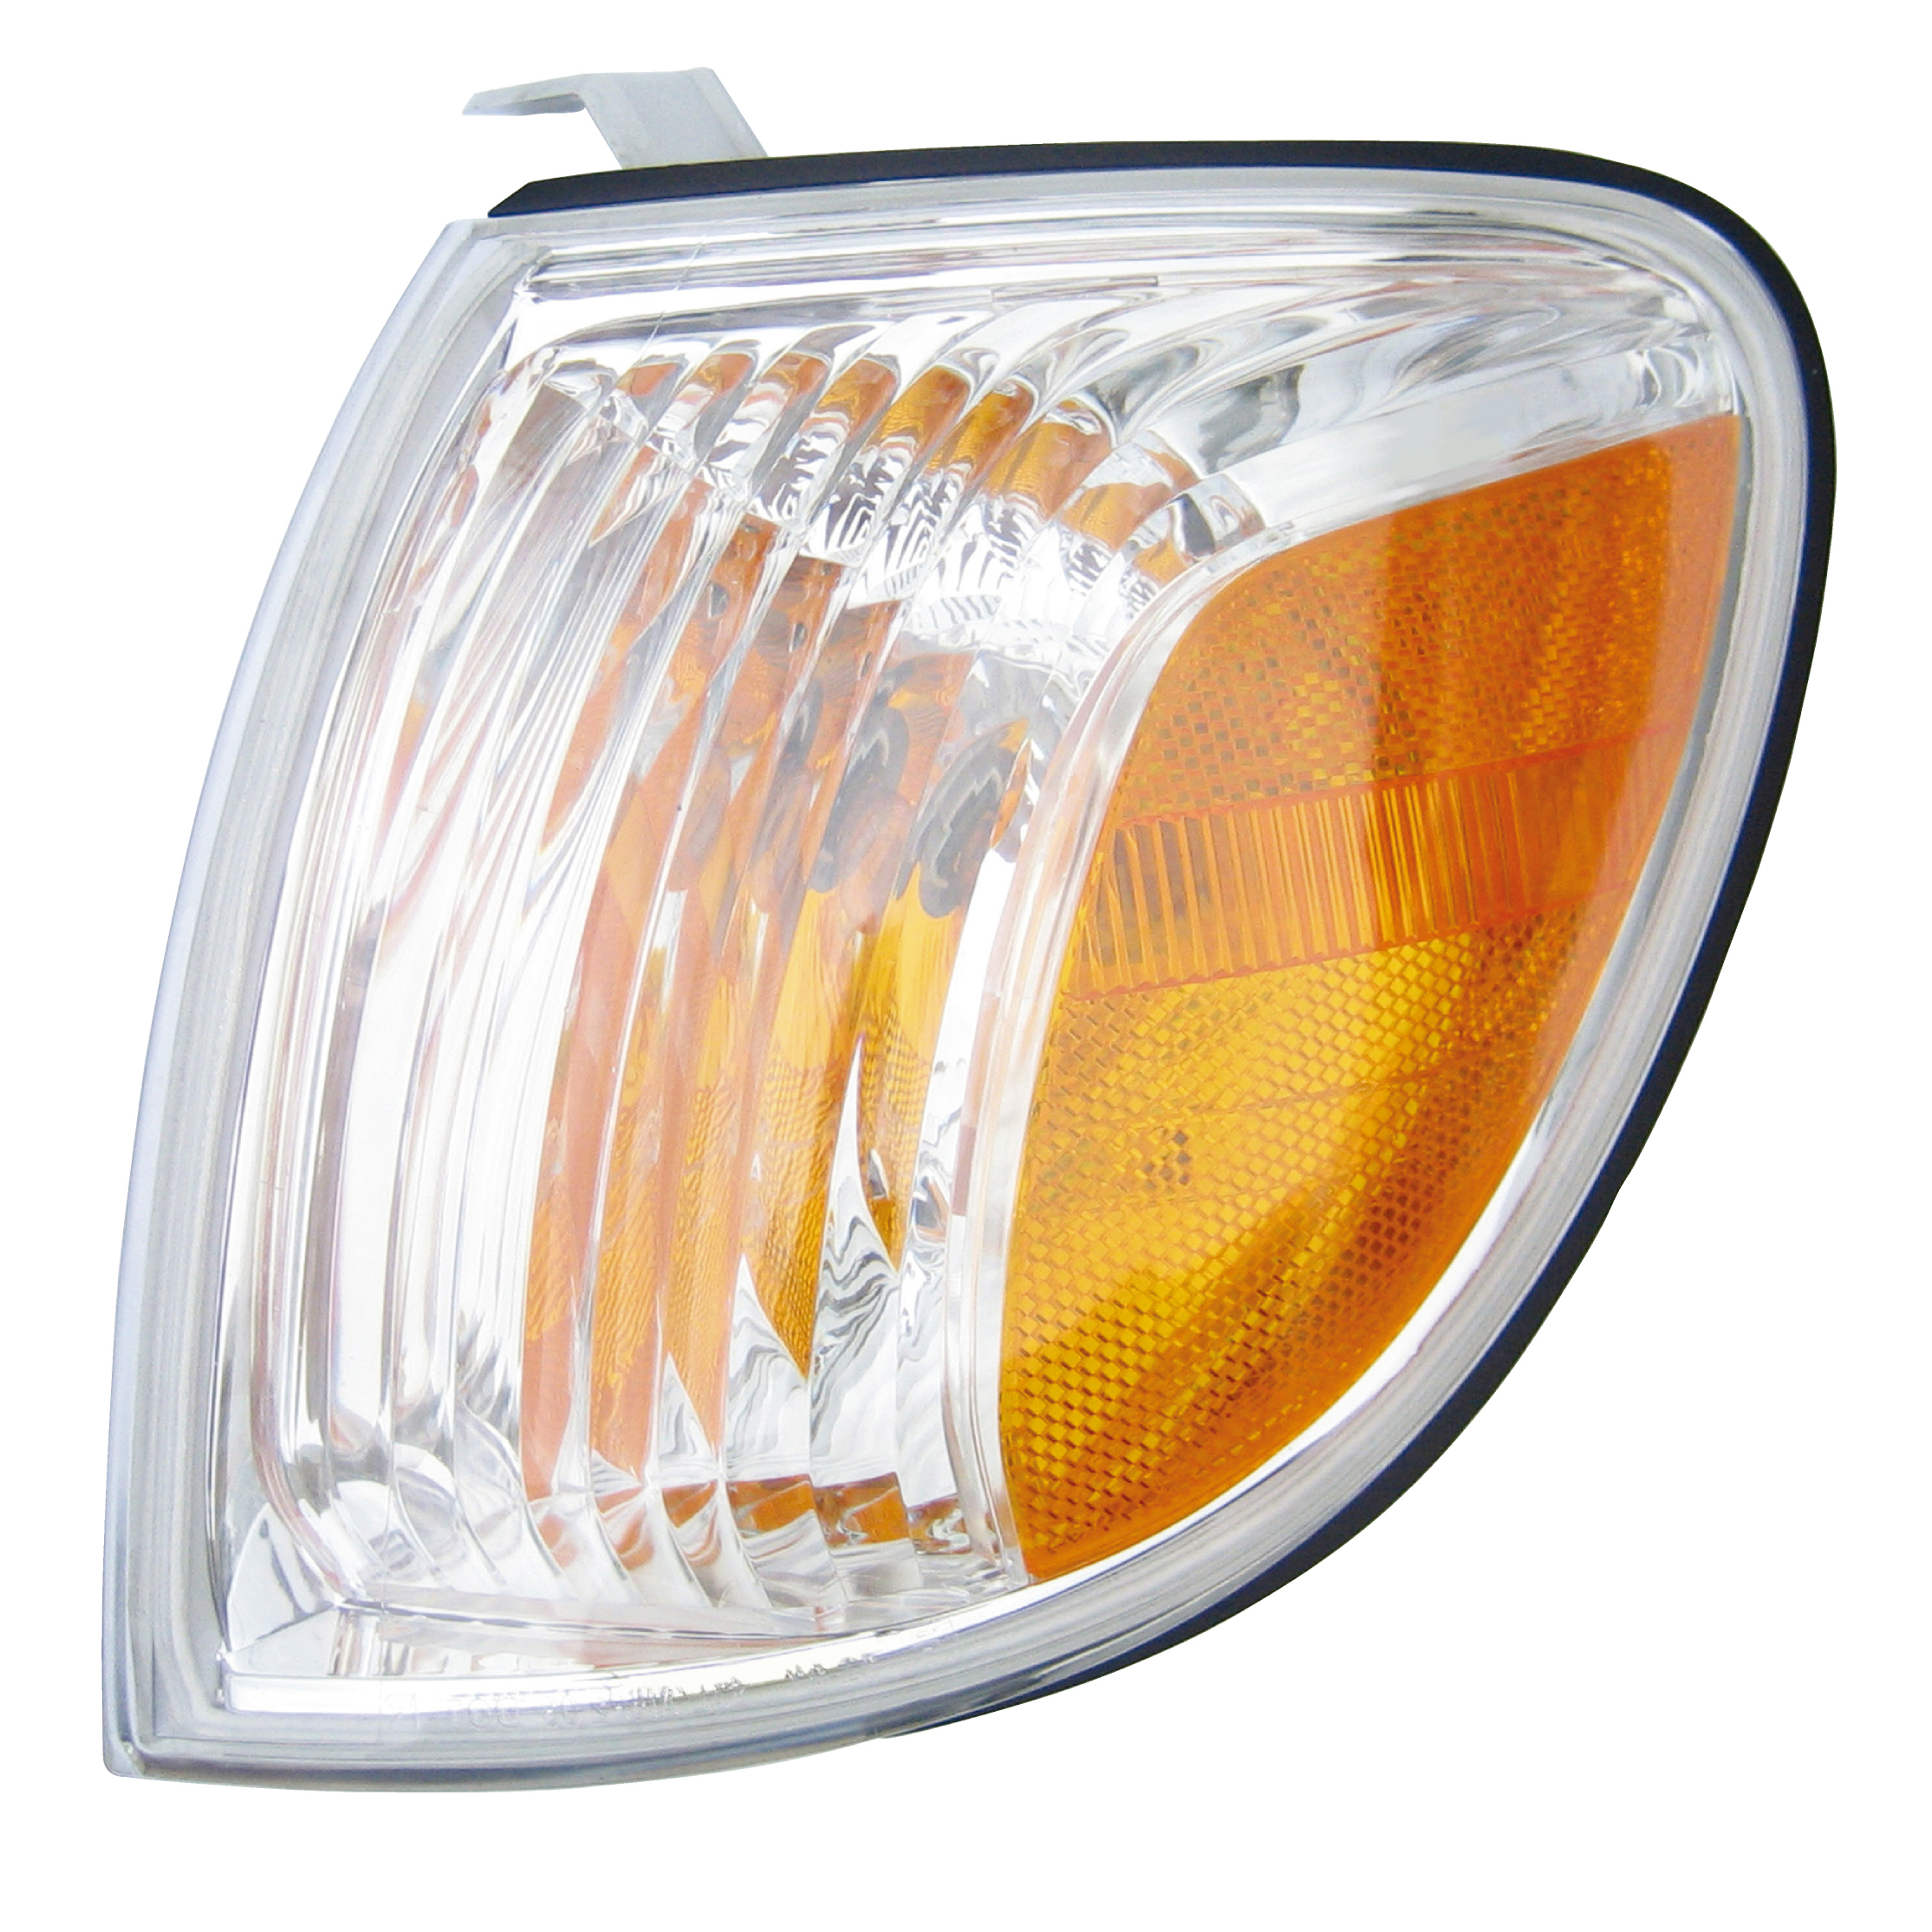 Regular//Access Cab Clear /& Amber Lens 815200C040 TO2530148 For Toyota Tundra Turn Signal Light 2005 2006 Driver Side